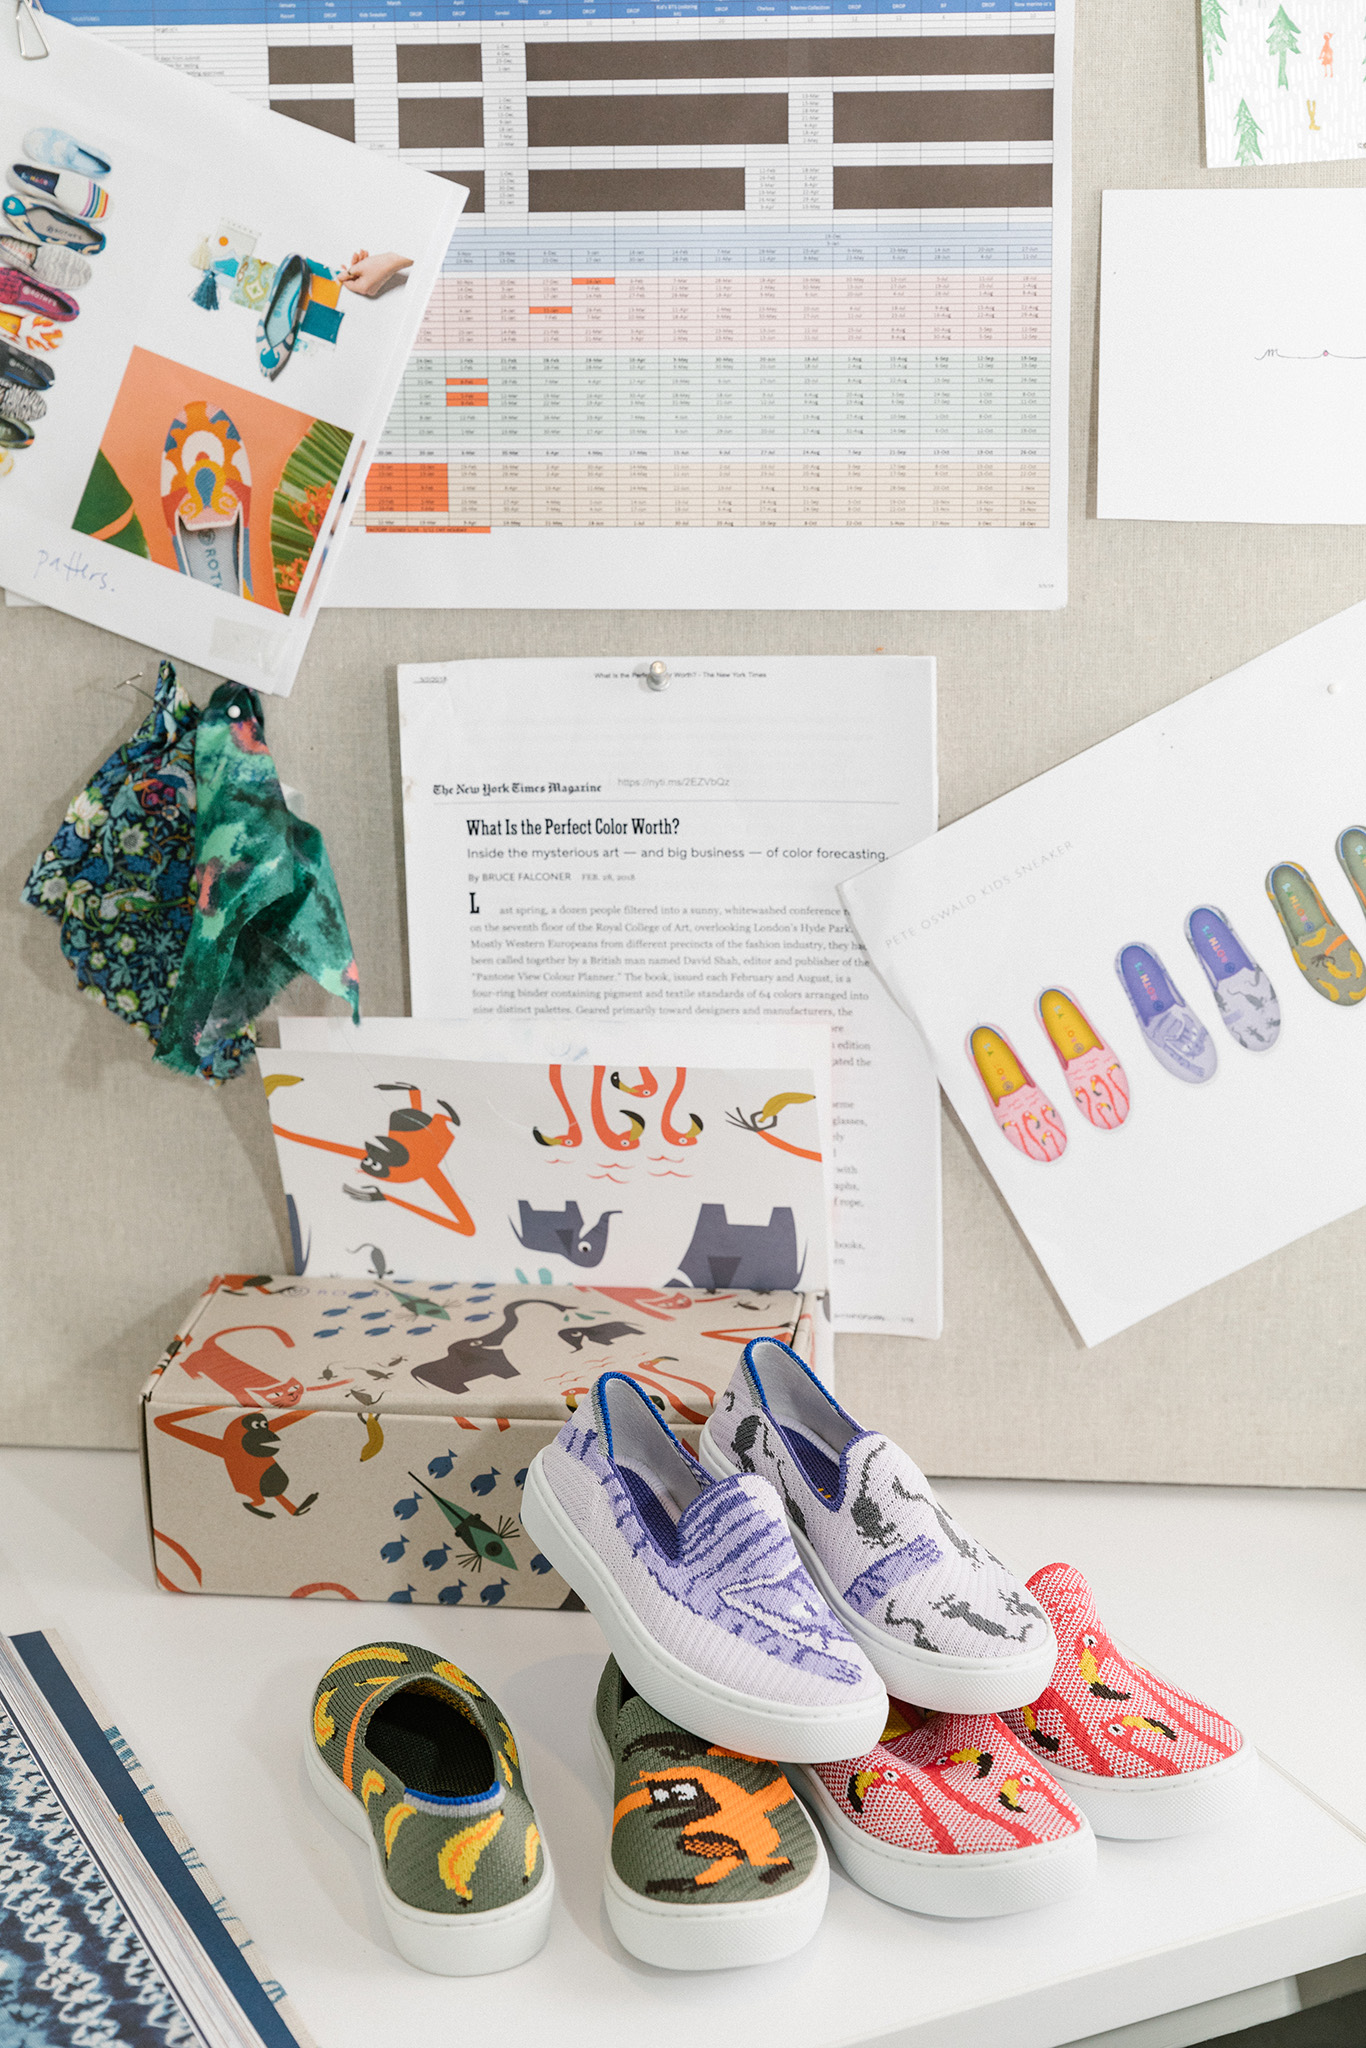 Design tools at the desk of Rothy's shoes creative director Erin Lowenberg at their headquarters in San Francisco, CA, June 4, 2019. Jason Henry for WWDErin Lowenberg of Rothy's in her studio.